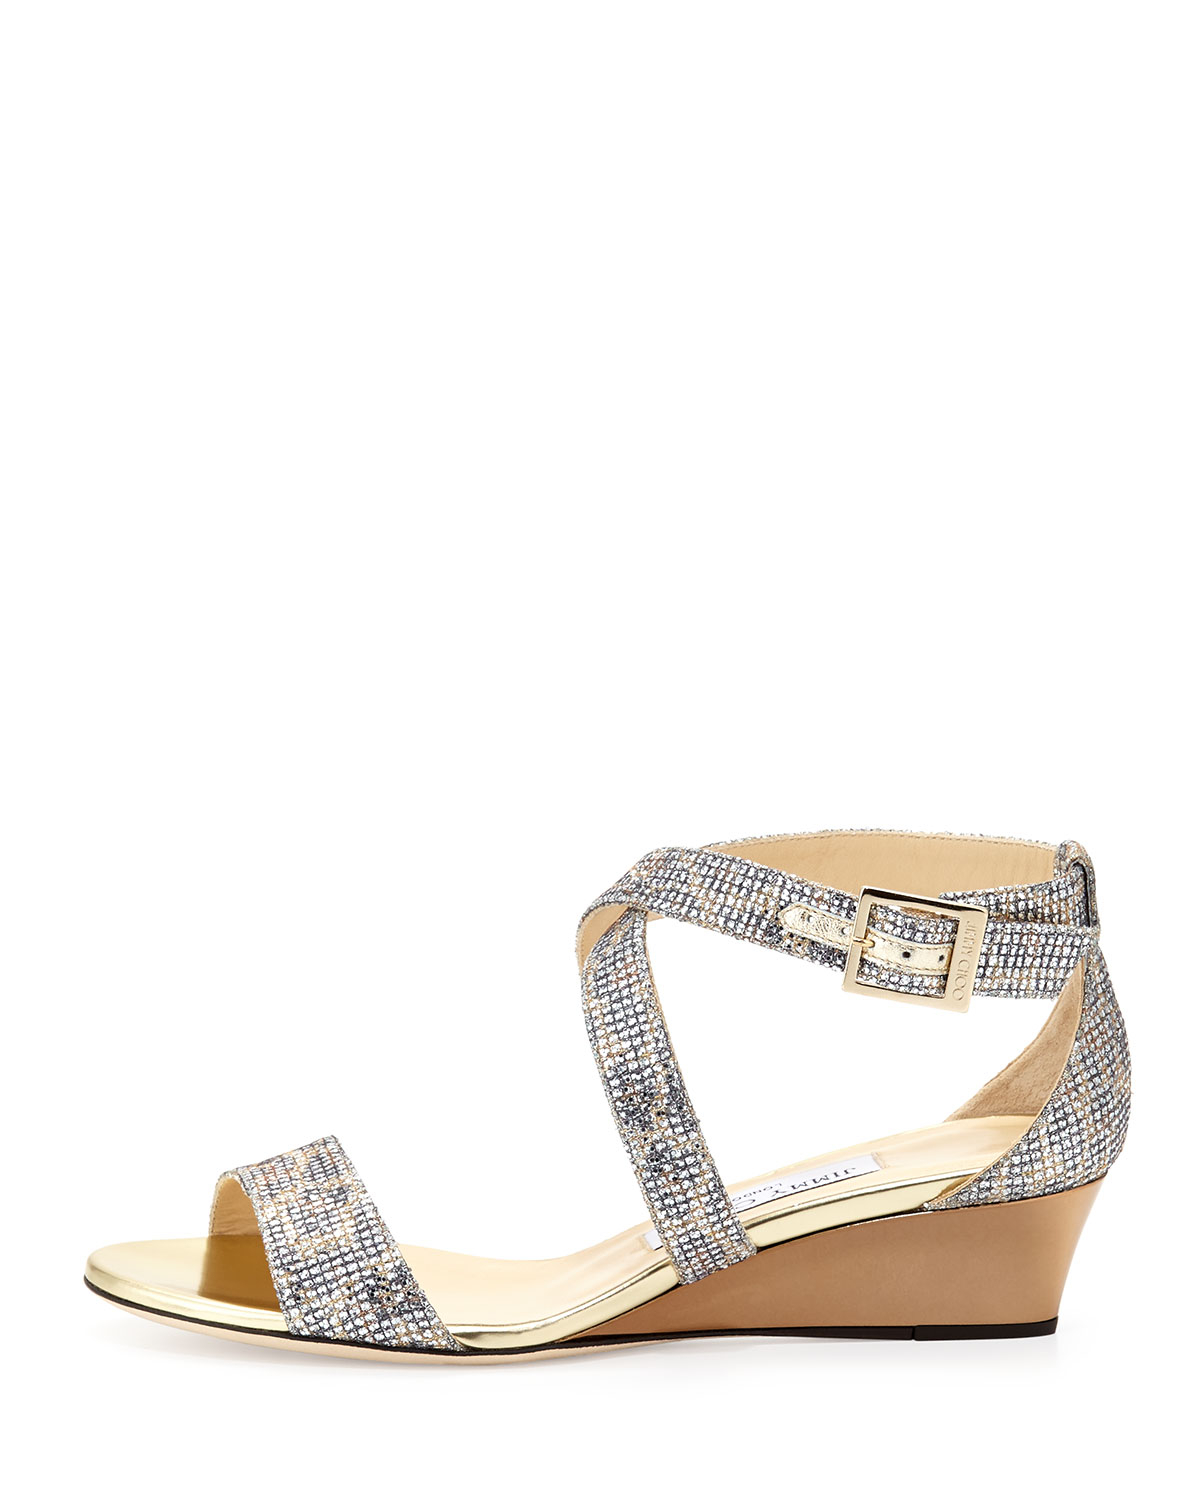 325b855ecab8 Lyst - Jimmy Choo Chiara Glitter Demi-Wedge Sandal in Metallic